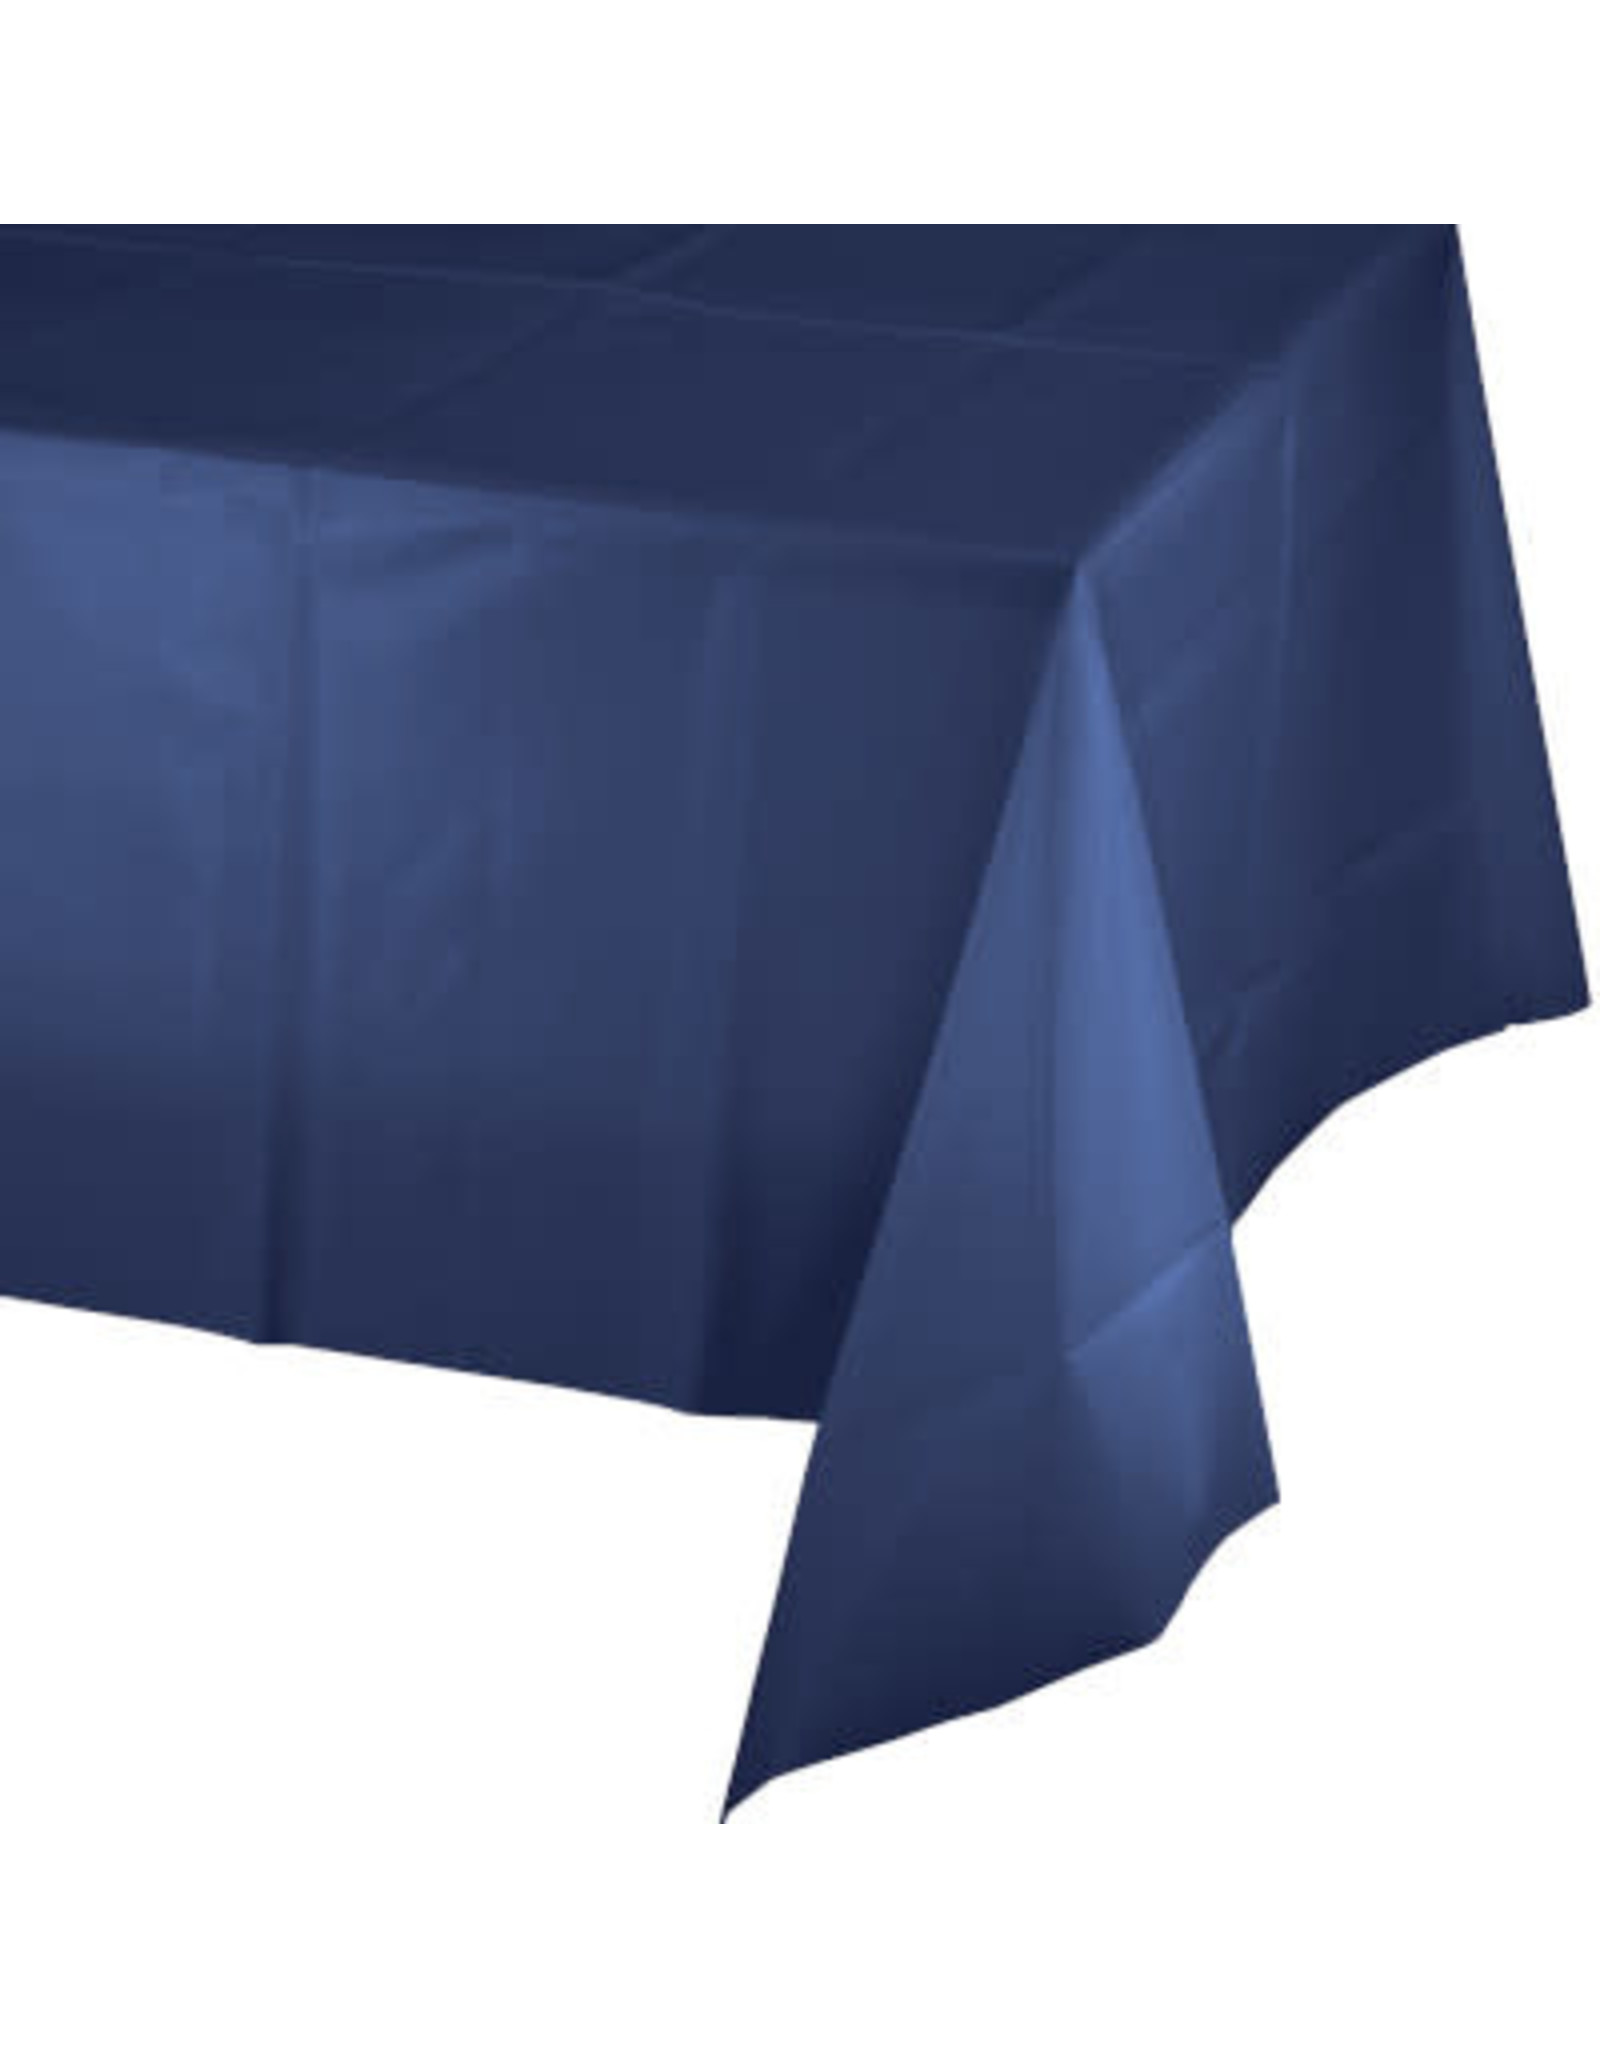 Touch of Color NAVY BLUE PLASTIC TABLECLOTH